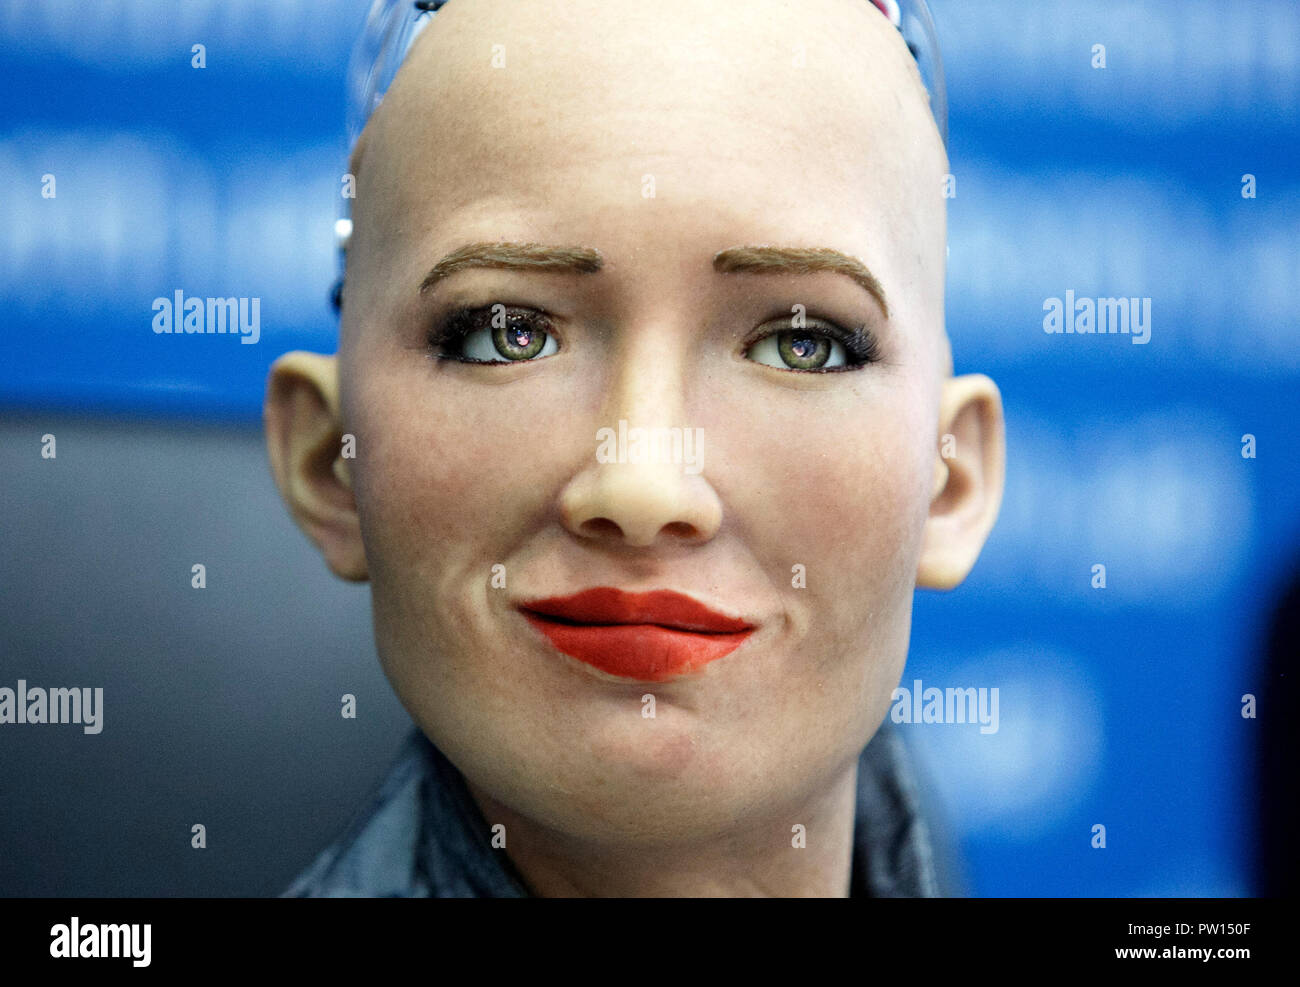 The humanoid robot Sophia speaks at a press conference in Kiev  The